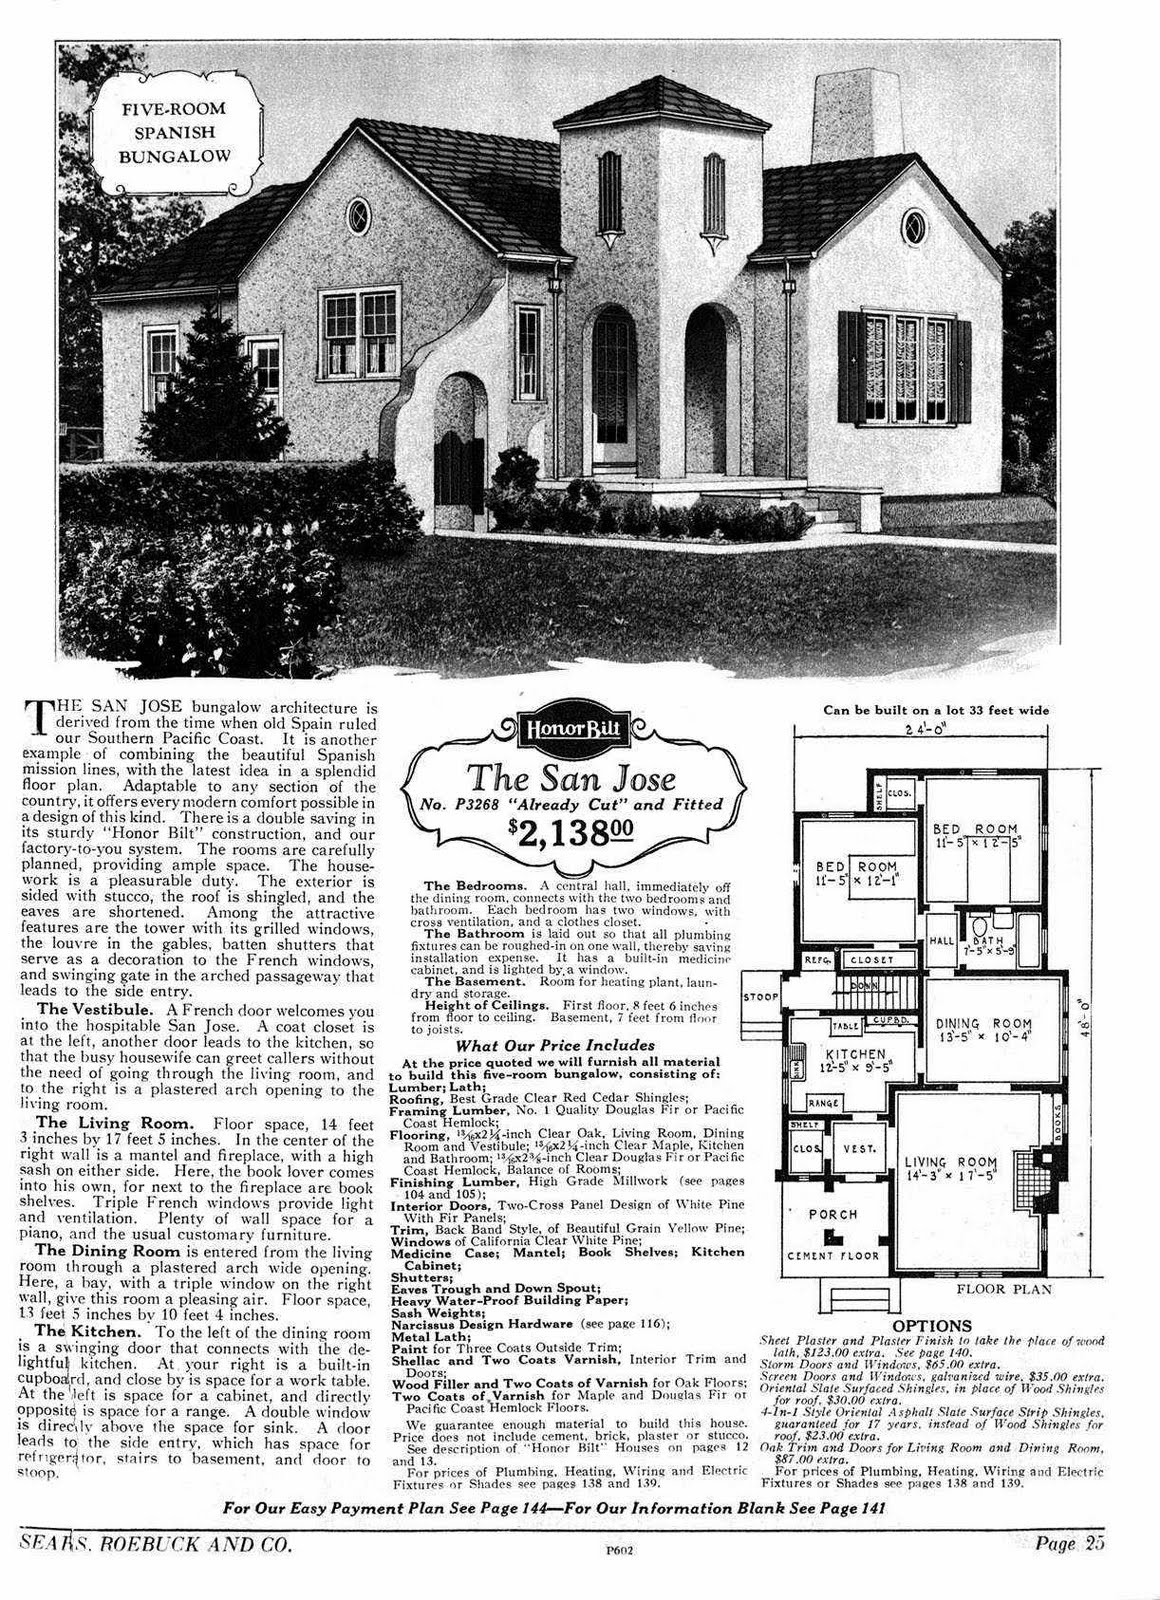 sanjose_1928 Painted Lady Victorian House Plans on barn house plans, painted lady victoria, painted ladies, victorian mansion floor plans, late 19th century house plans, small victorian floor plans, storybook house plans, painted victorian house beautiful, small row house plans, painted lady homes, authentic antebellum house plans, painted victorian houses san francisco, painted lady house floor plan, early-1900s house plans, fairy tale cottage house plans, painted lady window, painted lady house colors, old shotgun house plans, 1890 house plans,